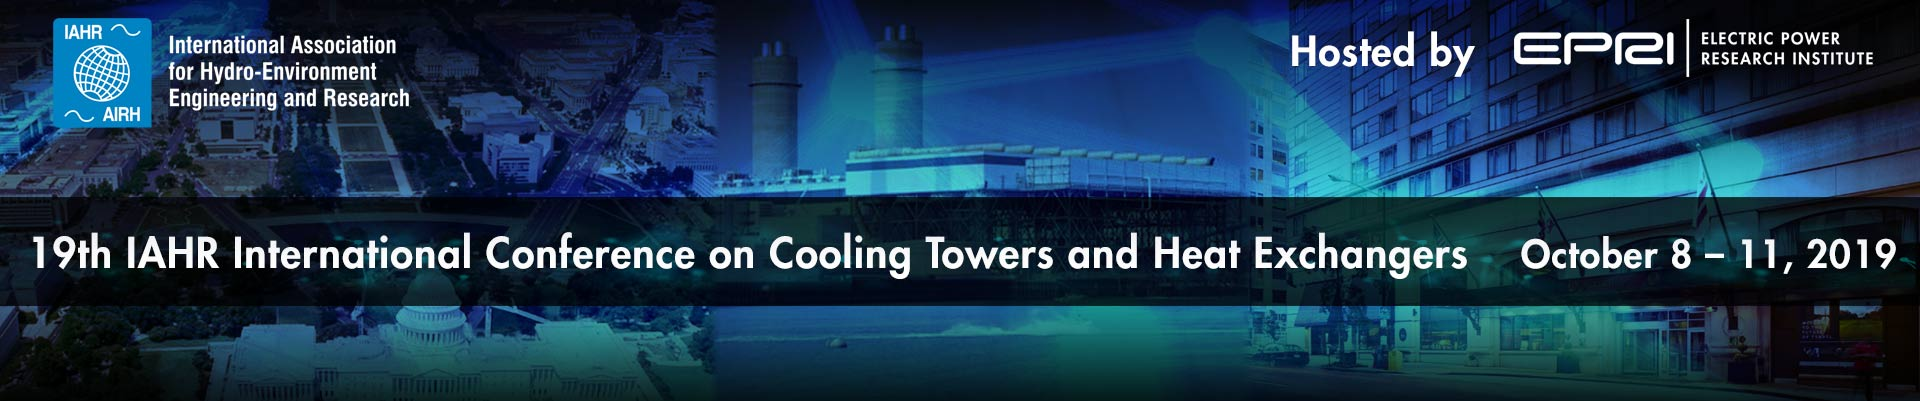 19th IAHR International Conference on Cooling Towers and Heat Exchangers Hosted by Electric Power Research Institute (EPRI)